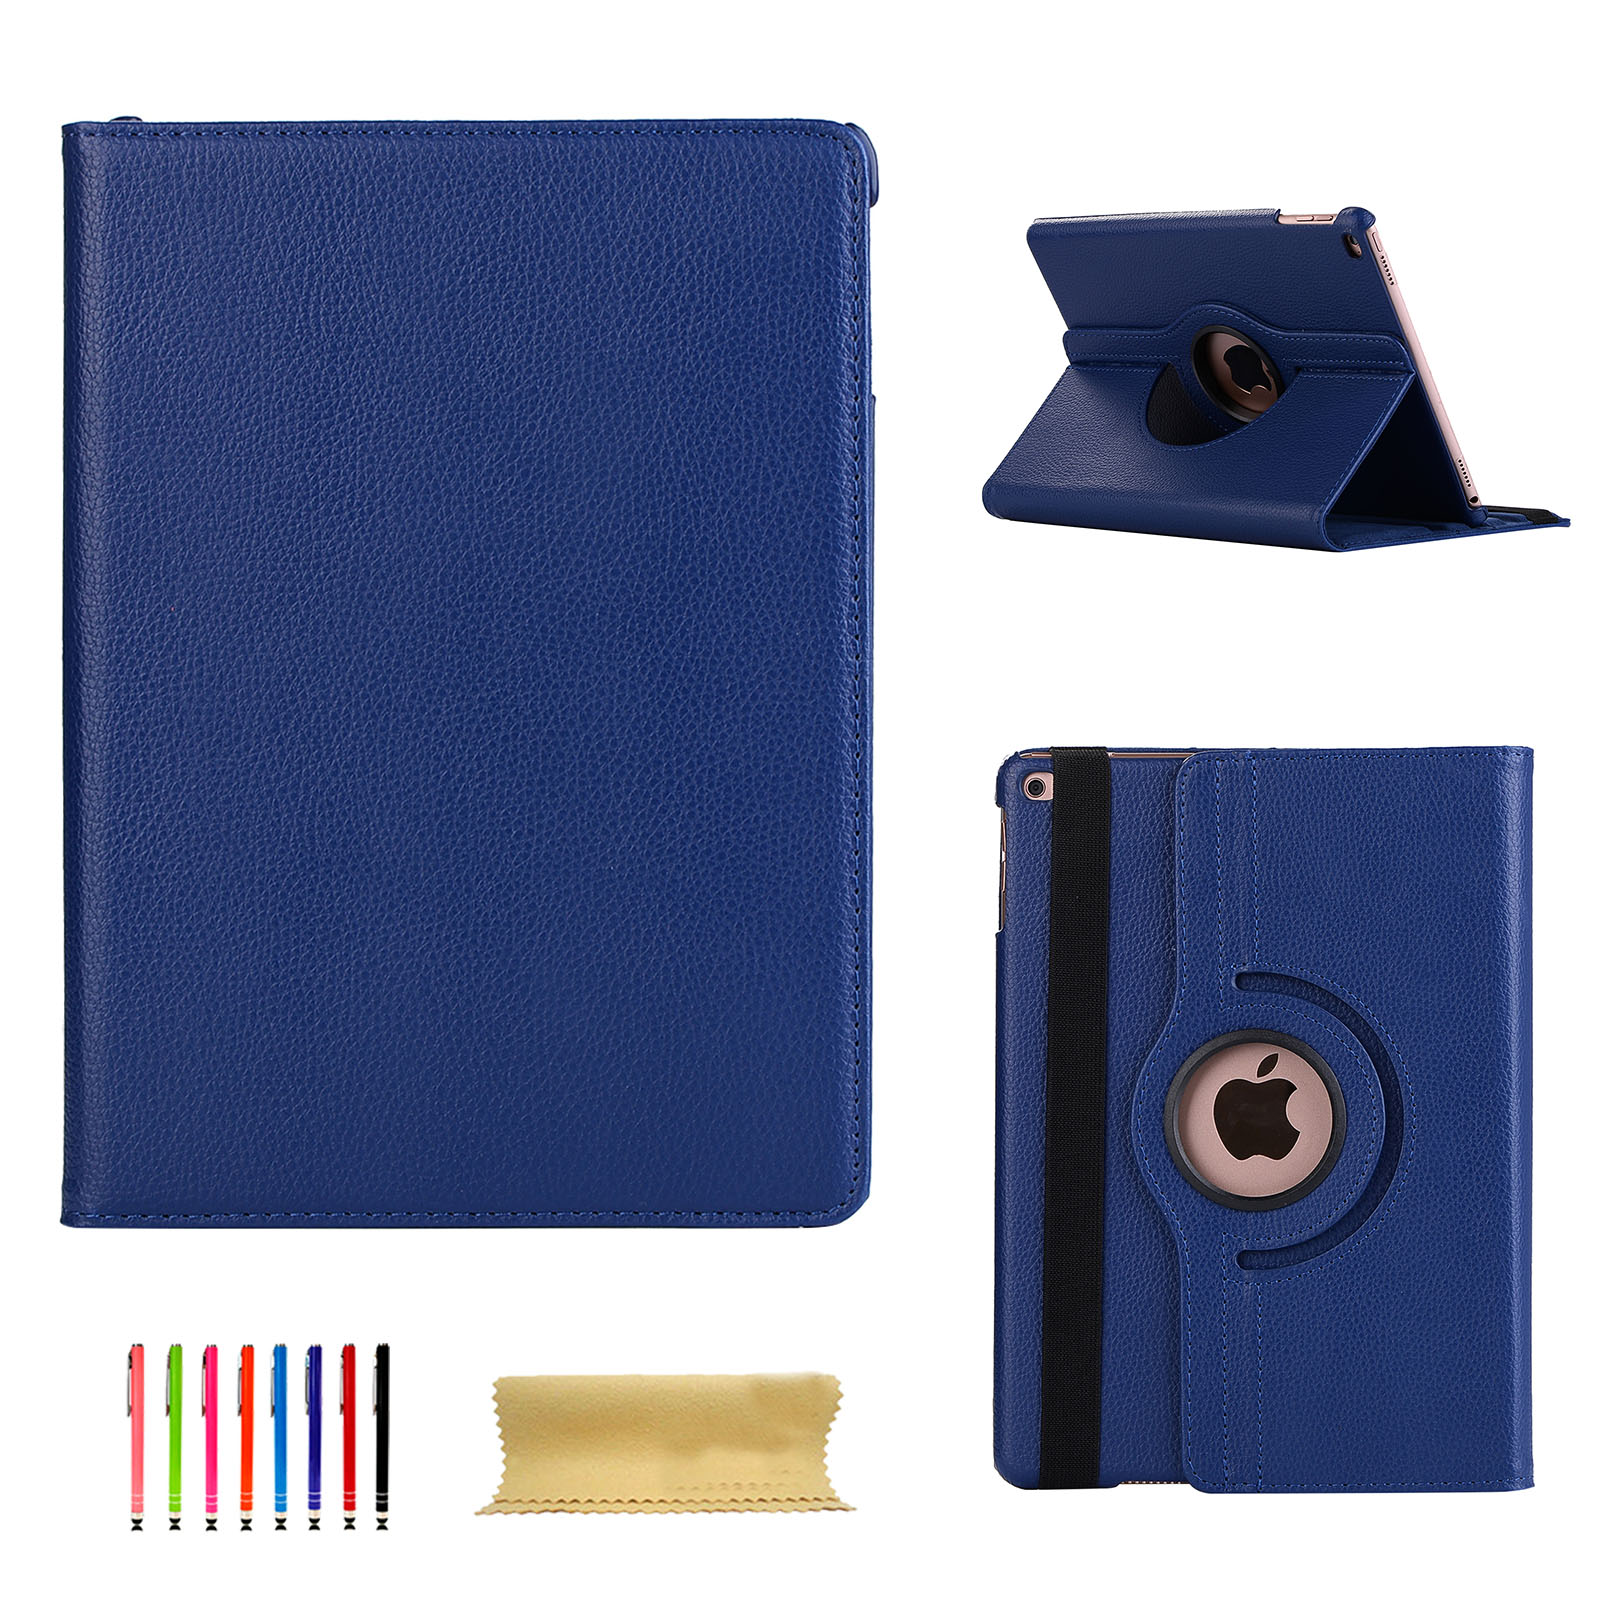 360-Leather-Rotating-Strap-Smart-Stand-Case-Cover-Fr-iPad-Air-Mini-Pro-9-7-10-5-034